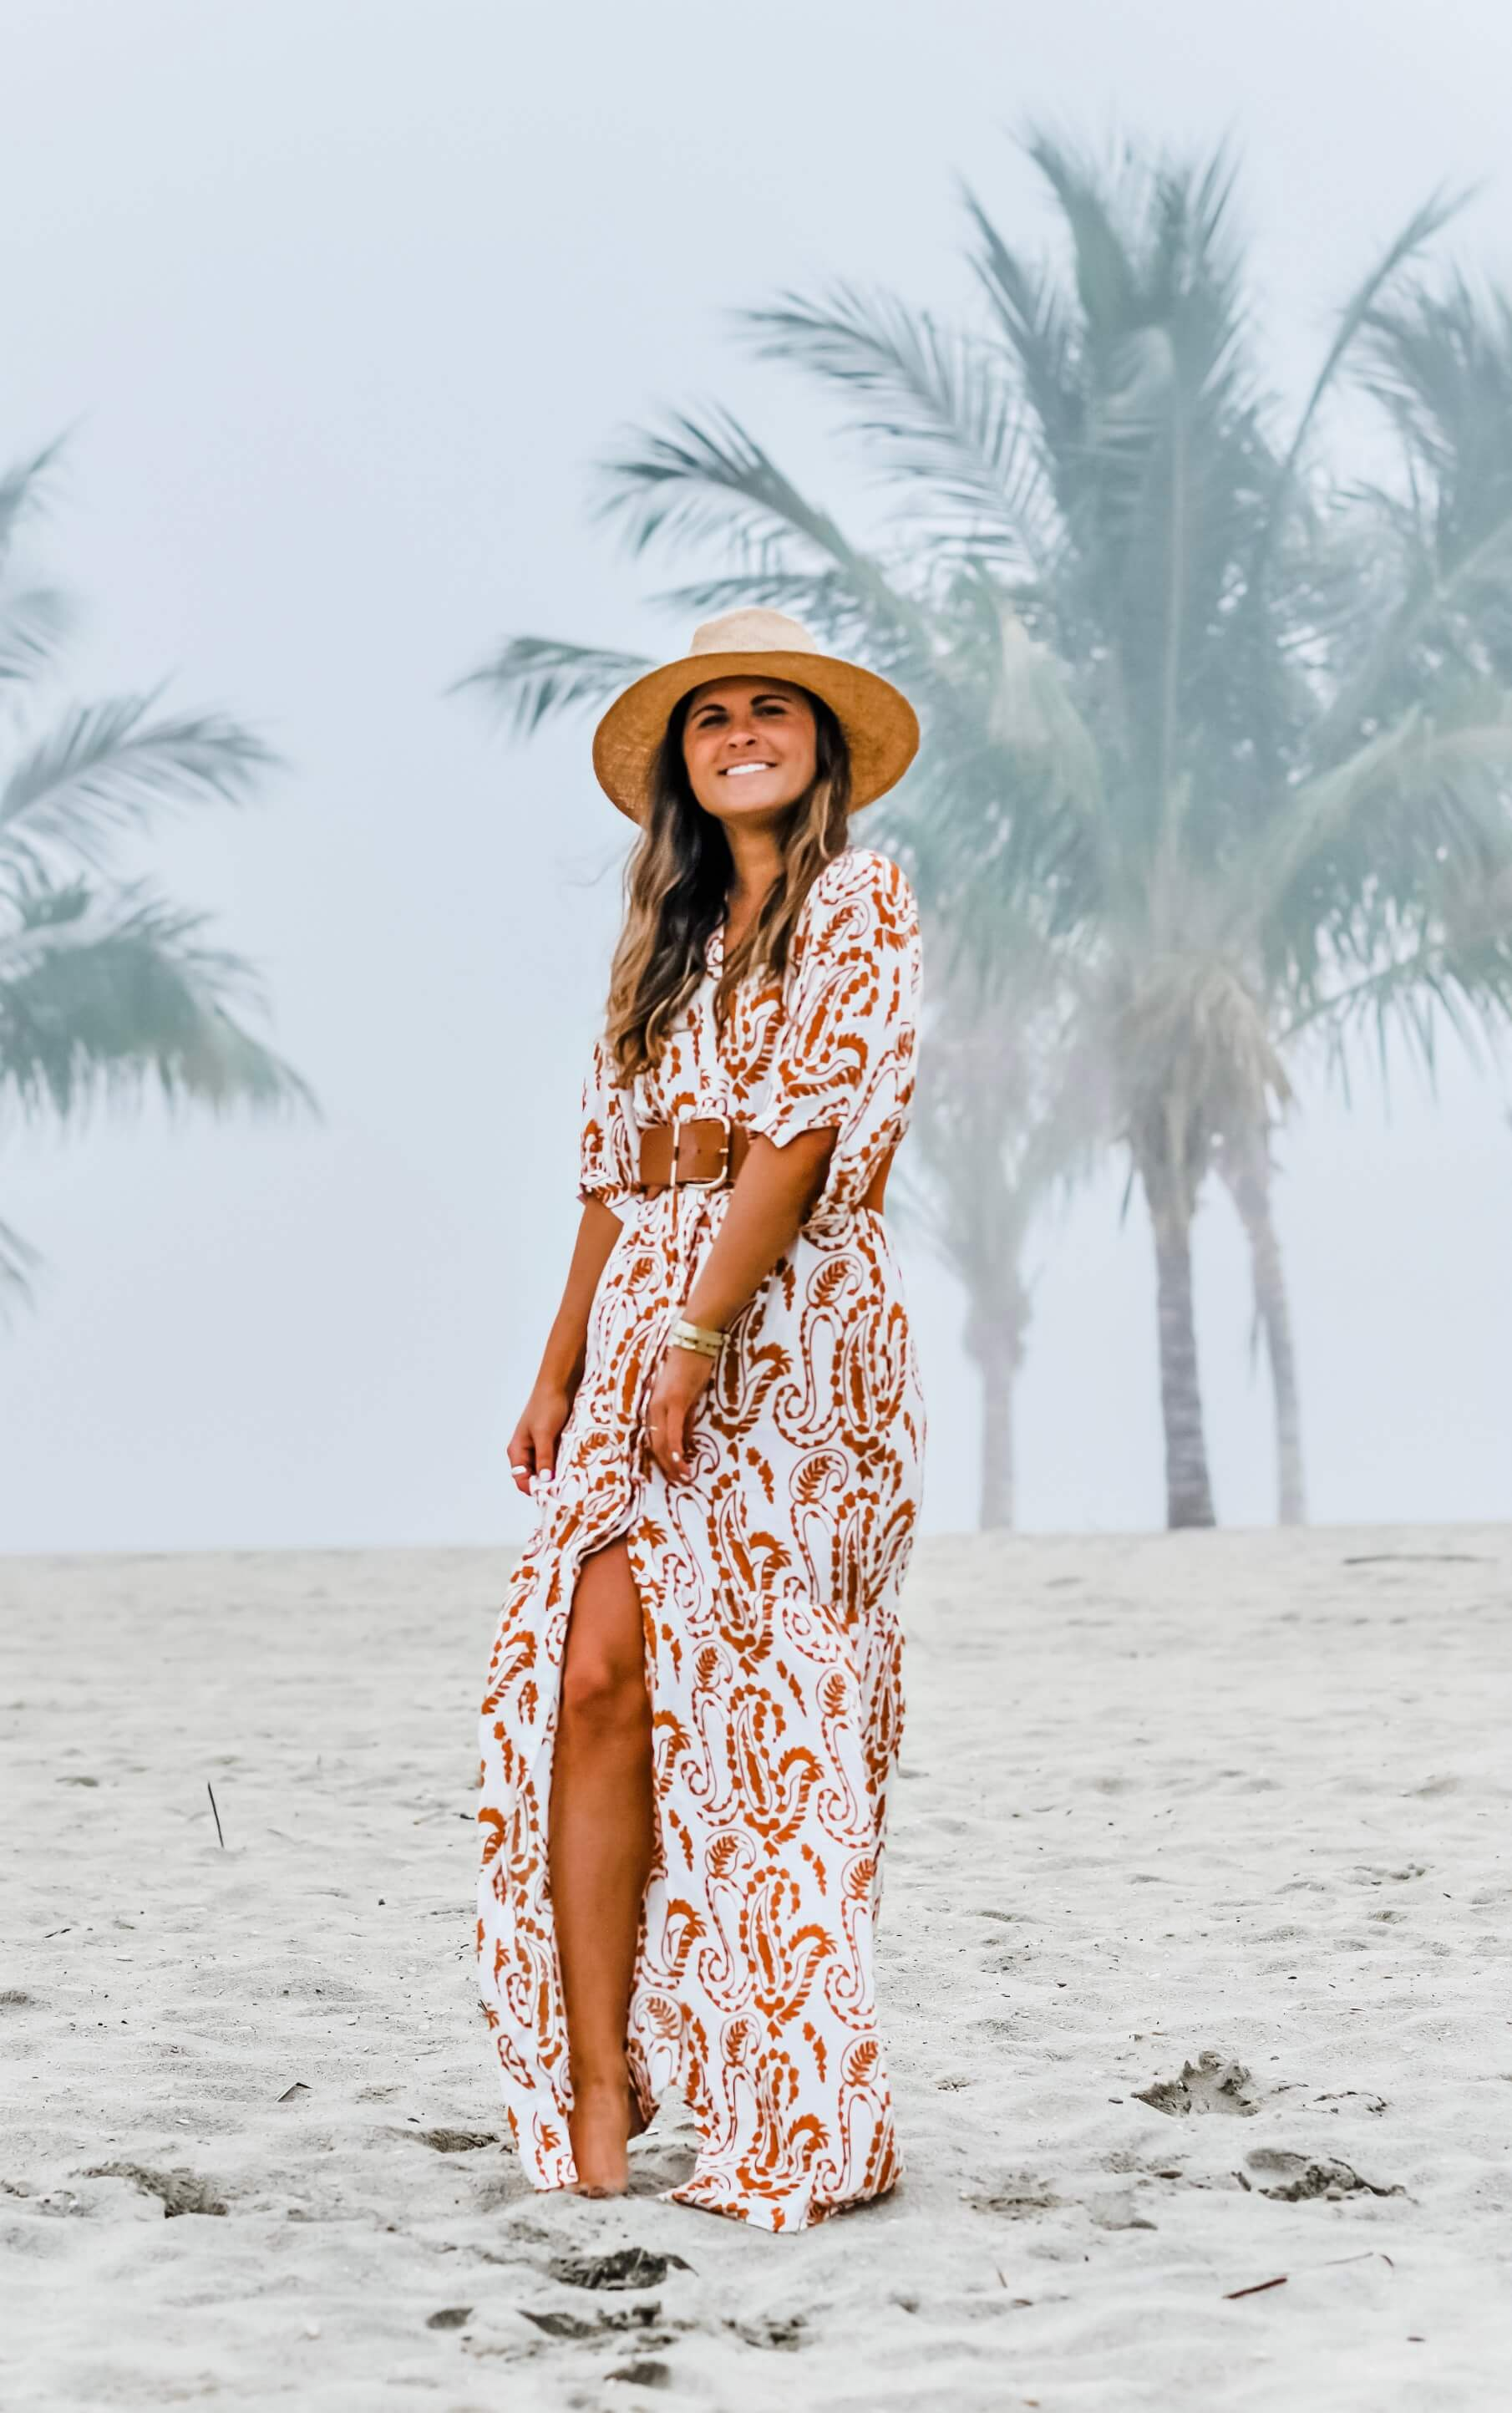 PrettyLittleThing White Paisley Print Button Front Split Maxi Dress, Tenth Street Hats Saltaire Straw Fedora, Summer Beach Outfit, Coverup Maxi Dress, Summer Beach Style, Tilden of To Be Bright